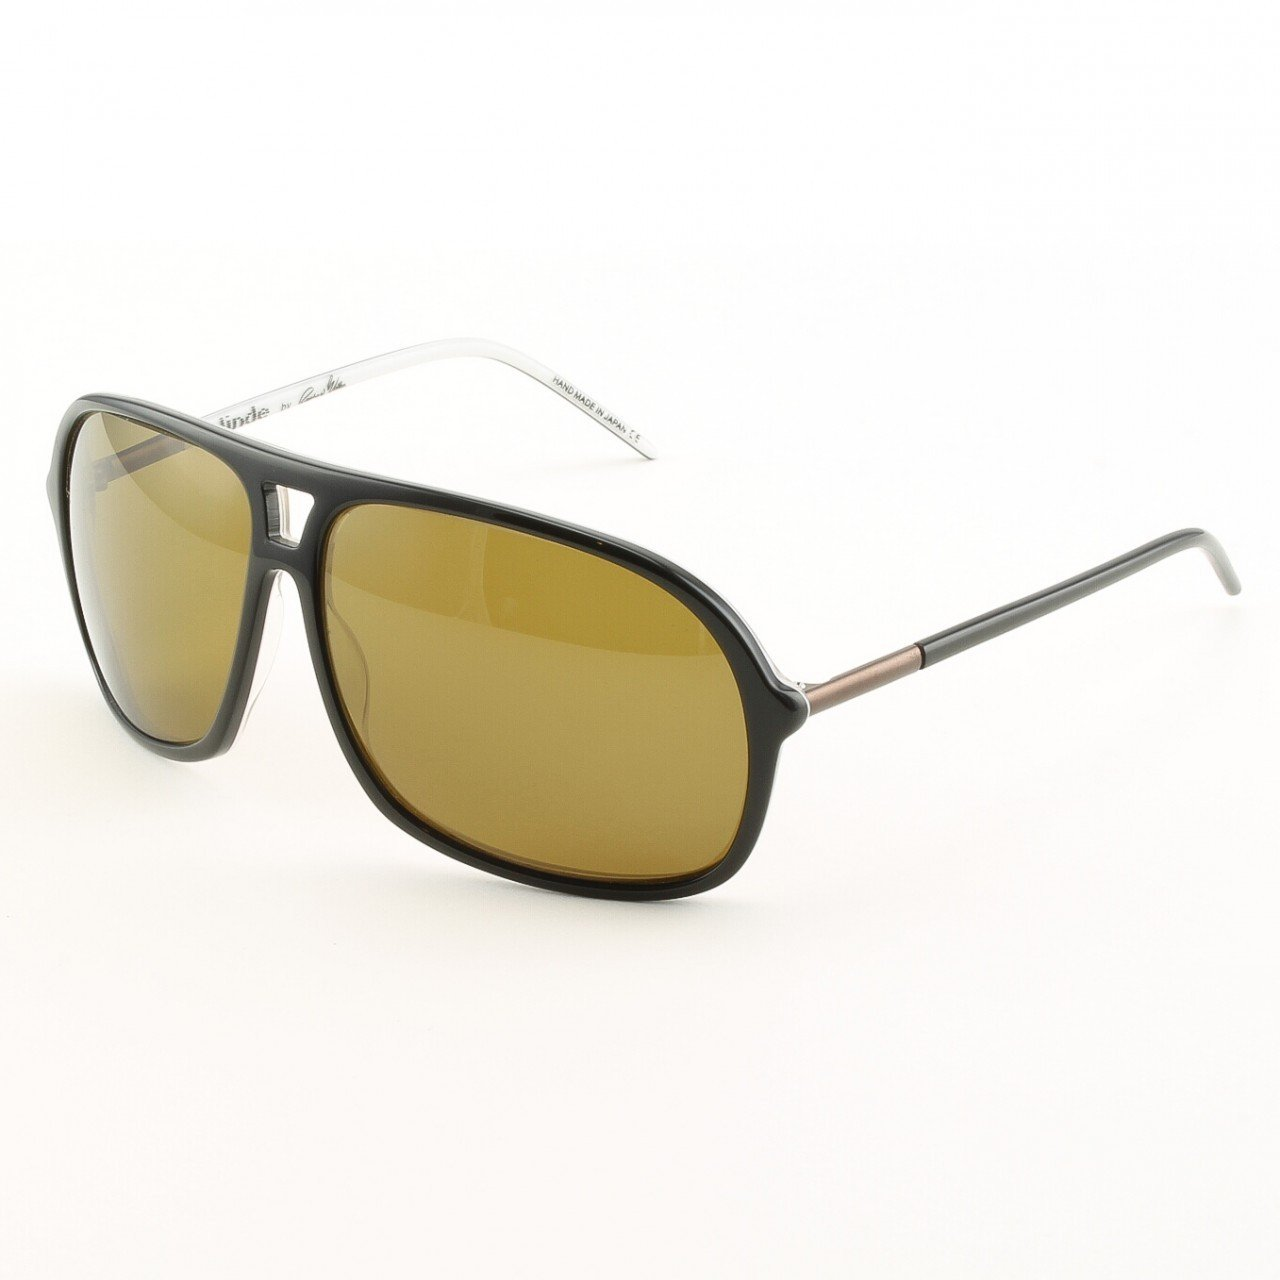 Blinde Lights Out Unisex Sunglasses Col. Almost Oreo Black with Brown Lenses